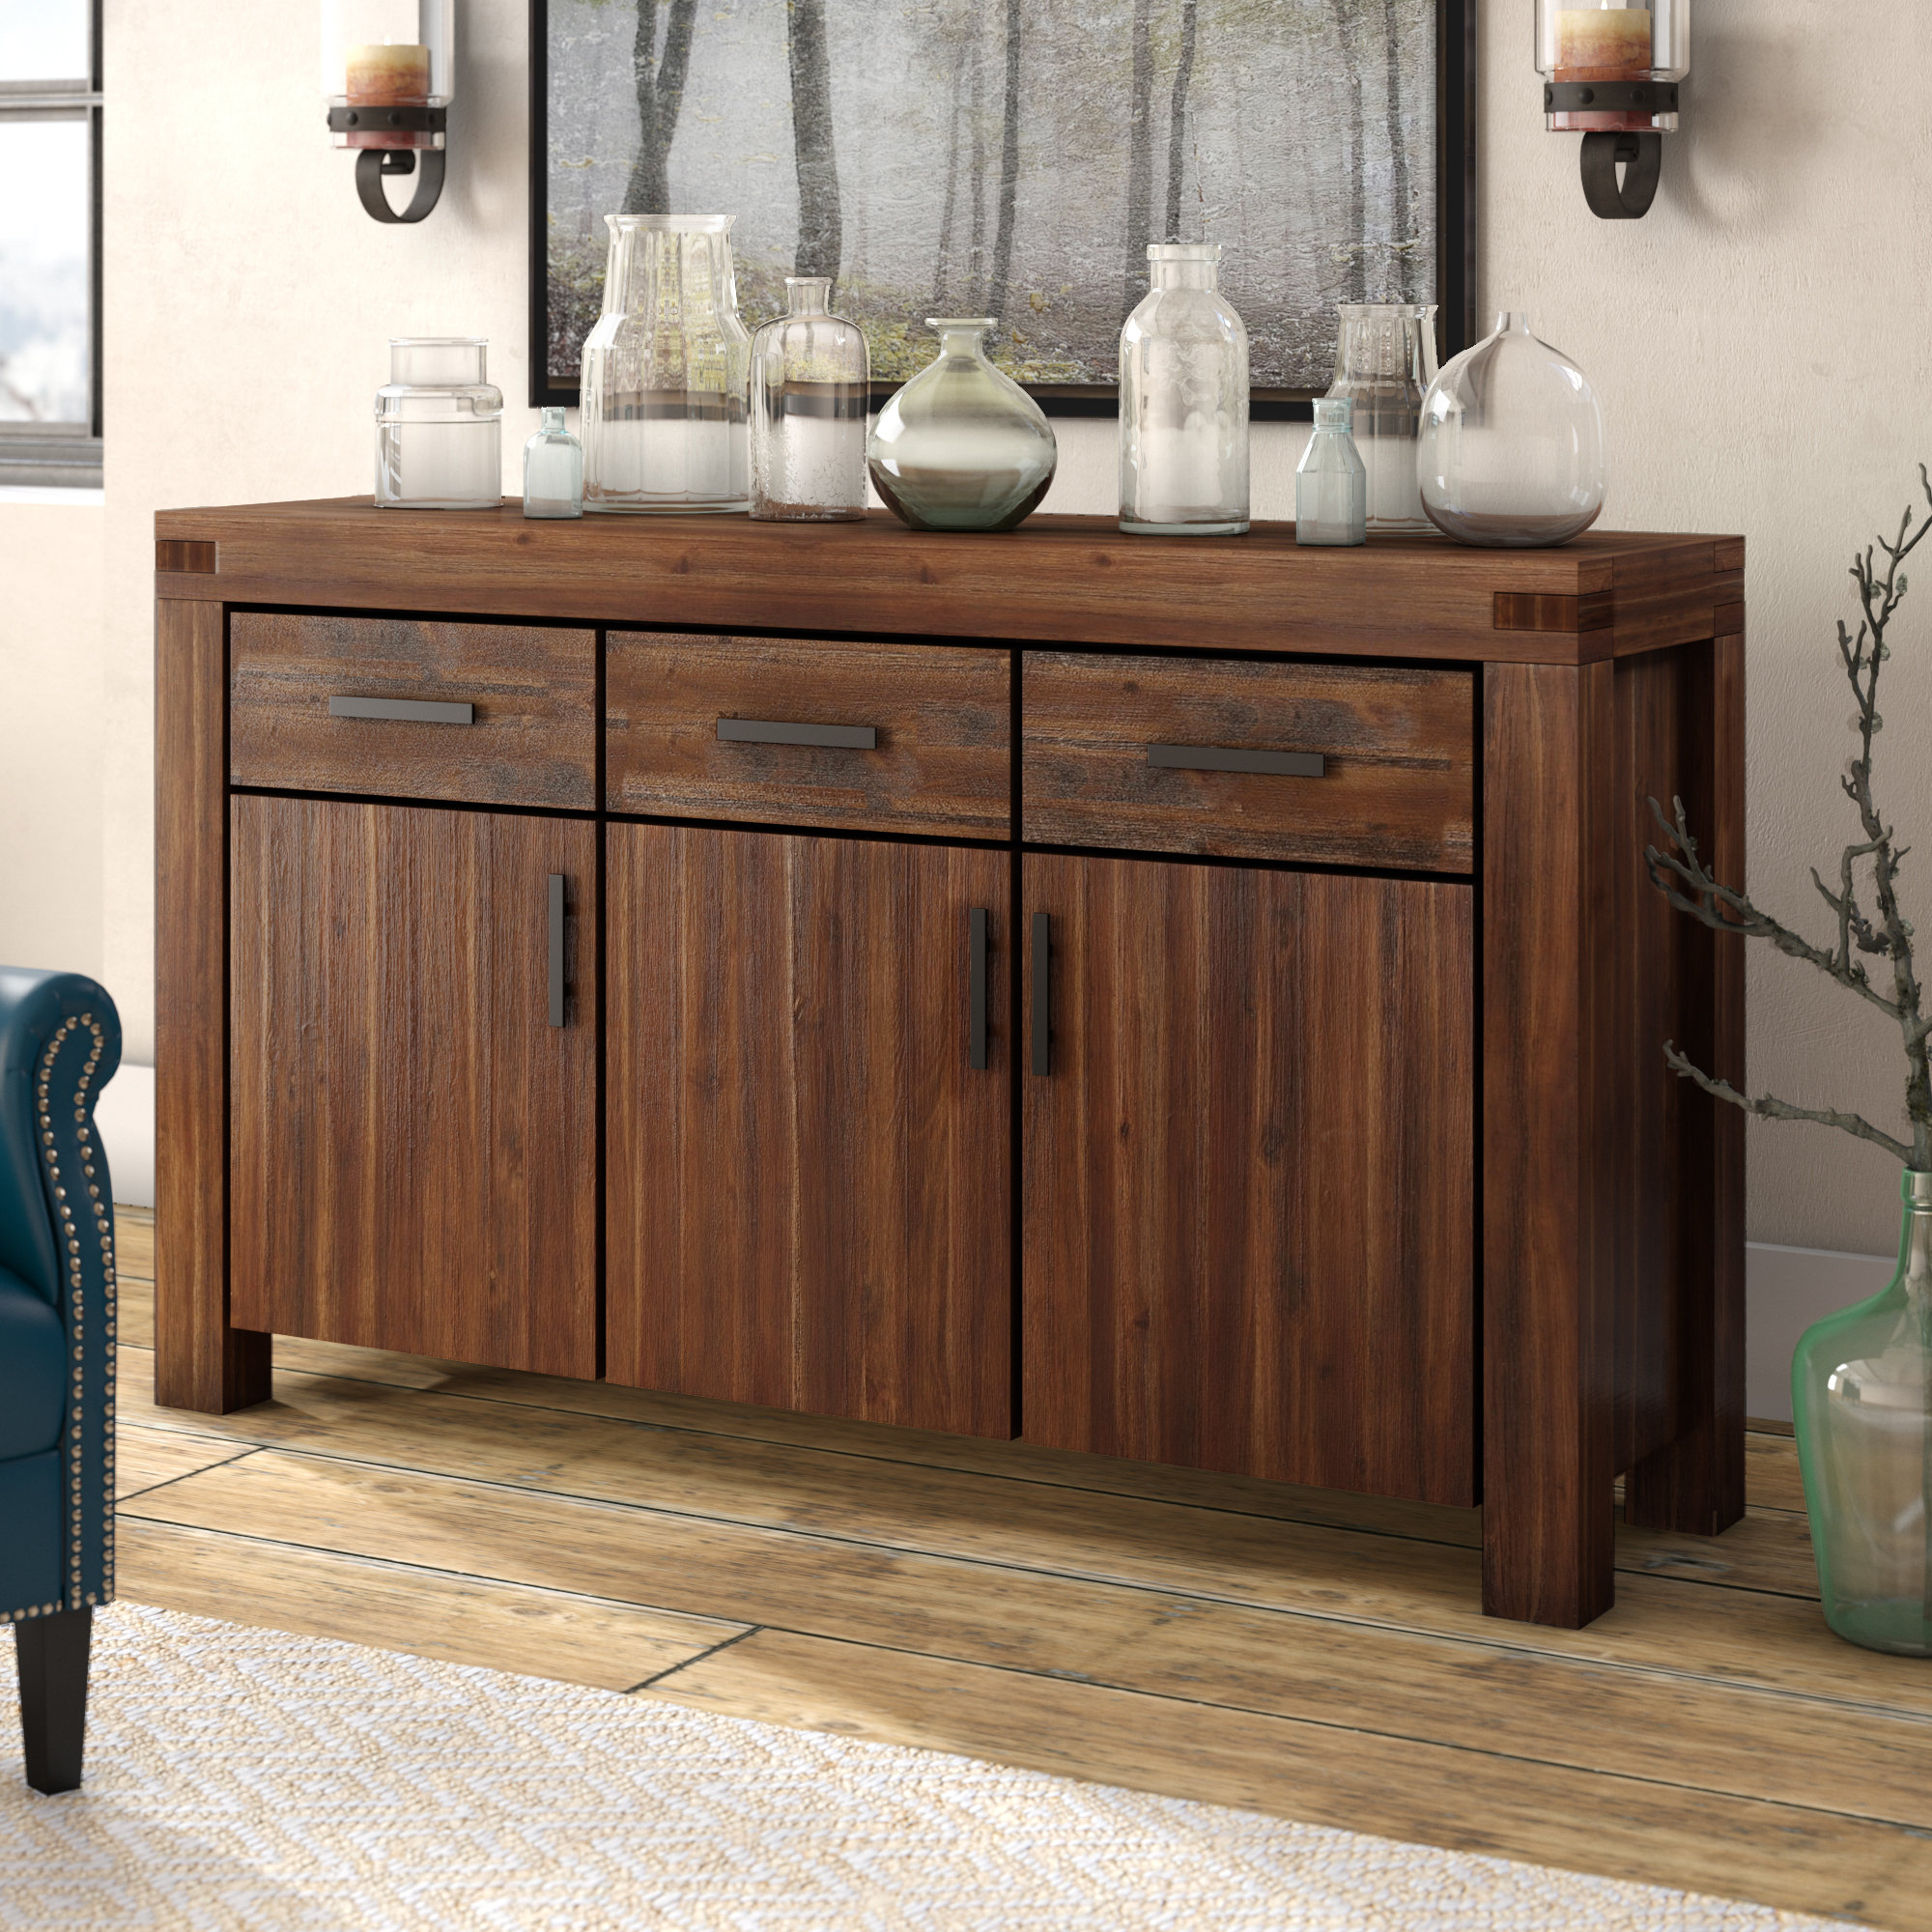 Gibson Sideboard With Regard To 2018 Seiling Sideboards (#7 of 20)